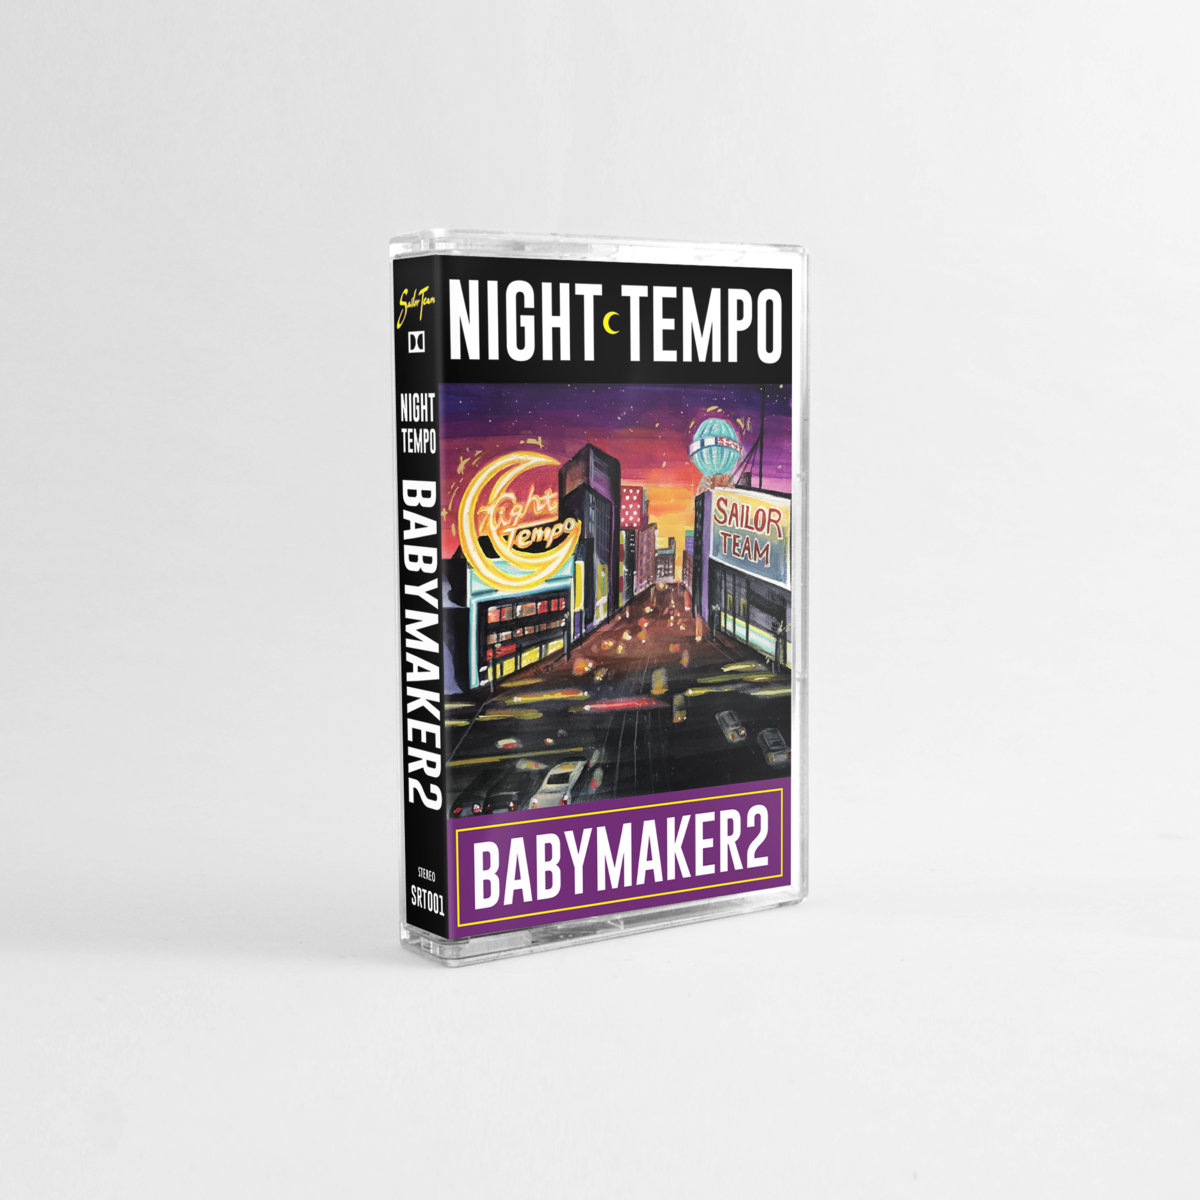 unun_night-tempo_baby-maker2_Cassette.jpg